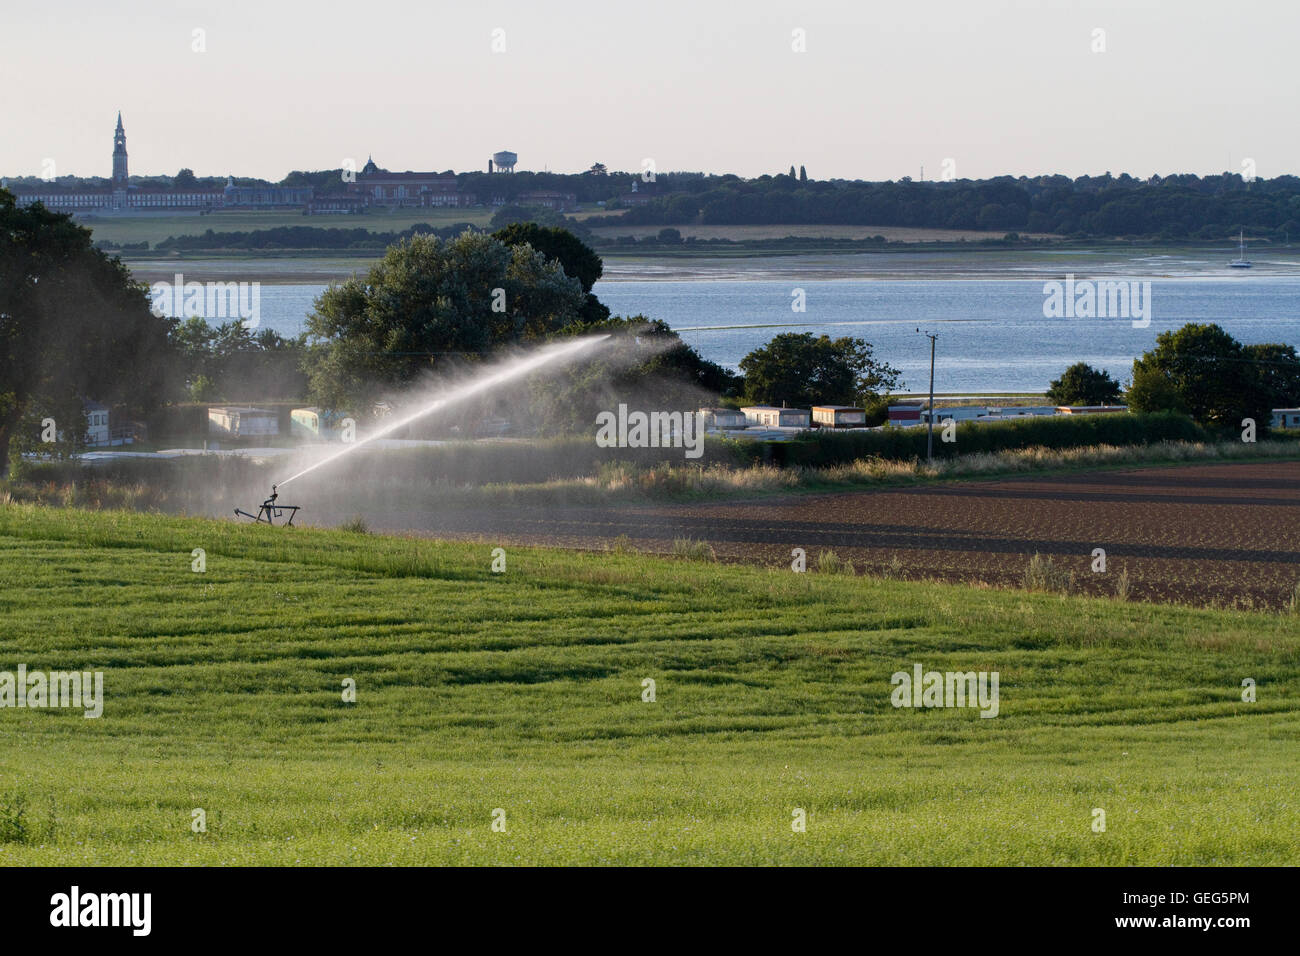 A field being irrigated by the River Stour and a caravan park with the Royal Hospital School in the background - Stock Image